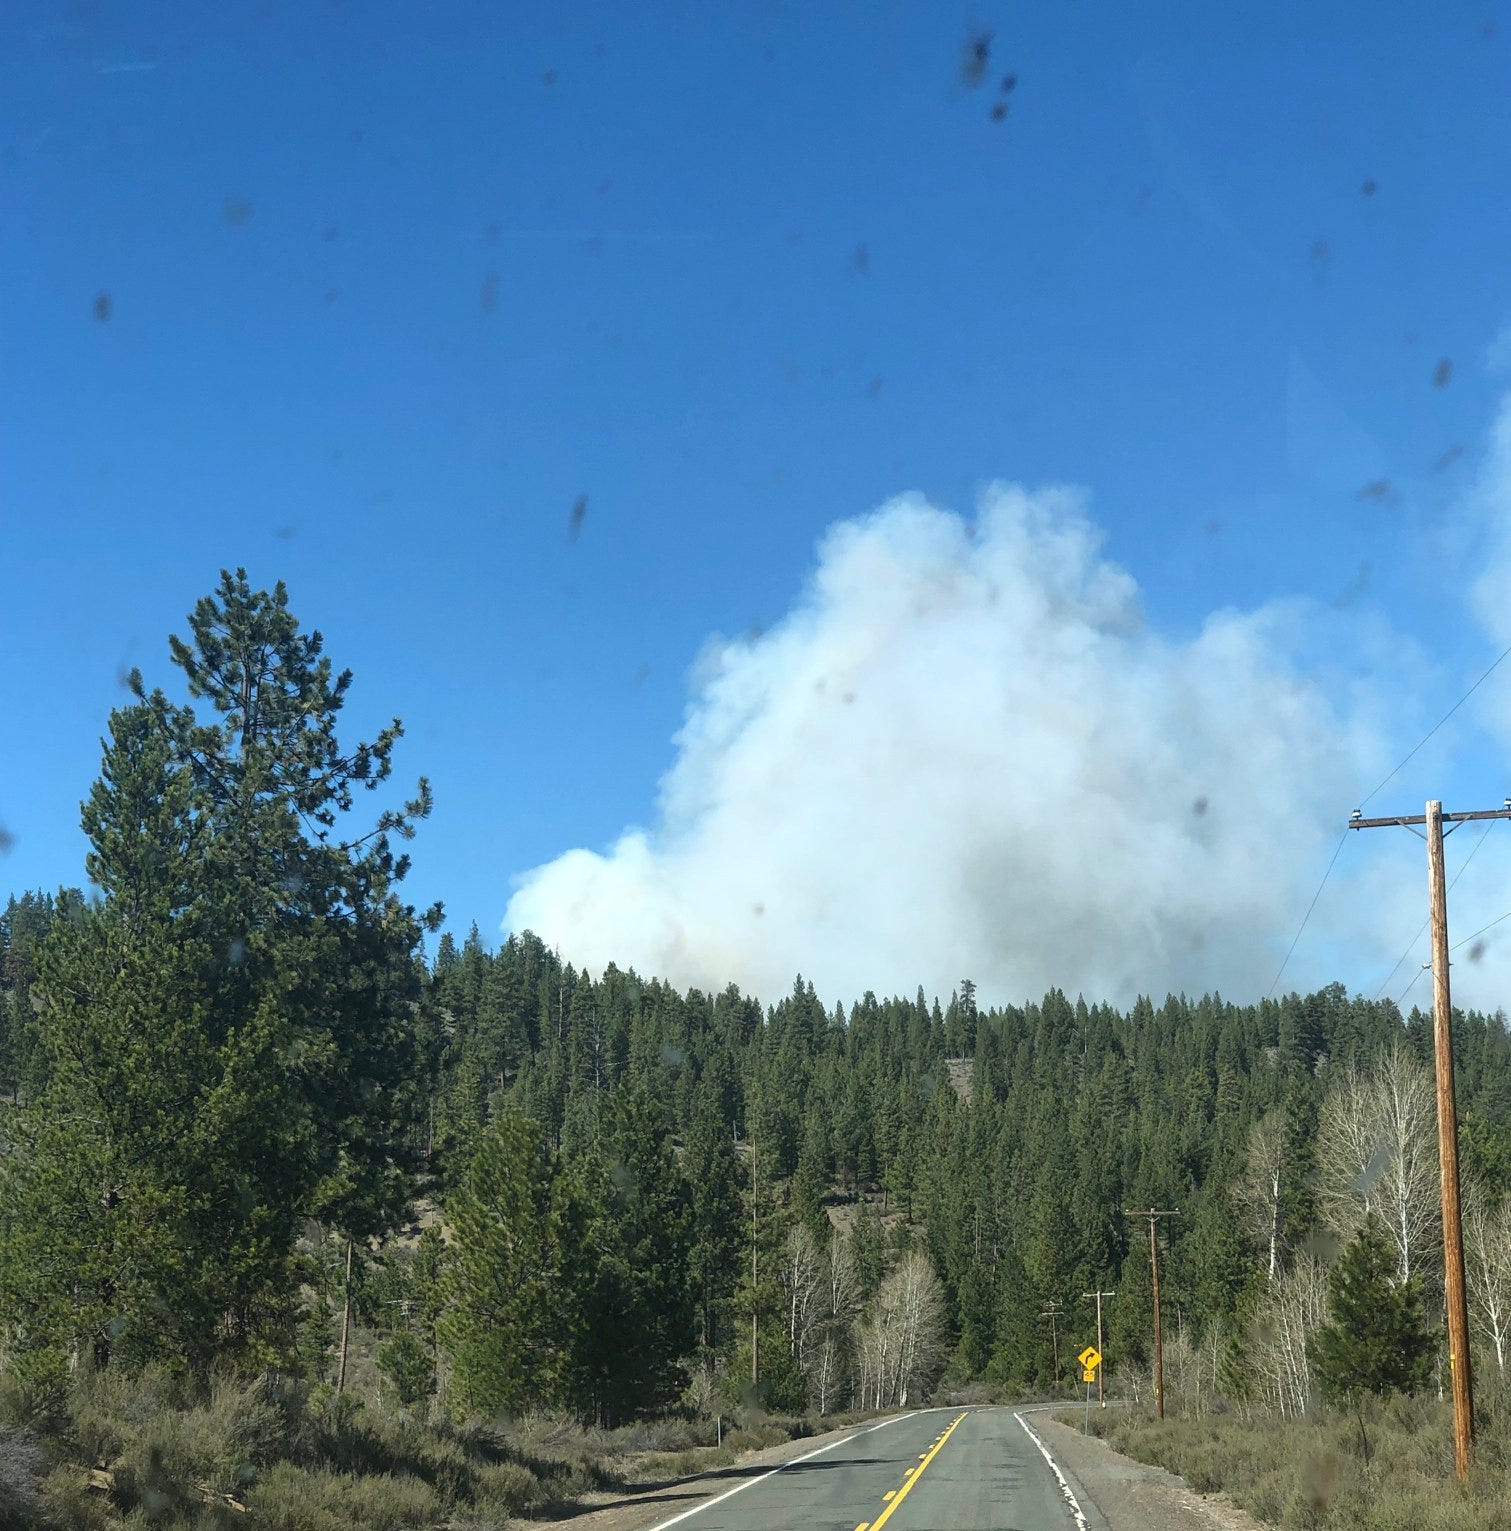 Bray Mill Fire in southern Oregon grows to 400 acres, marking third large wildfire of season